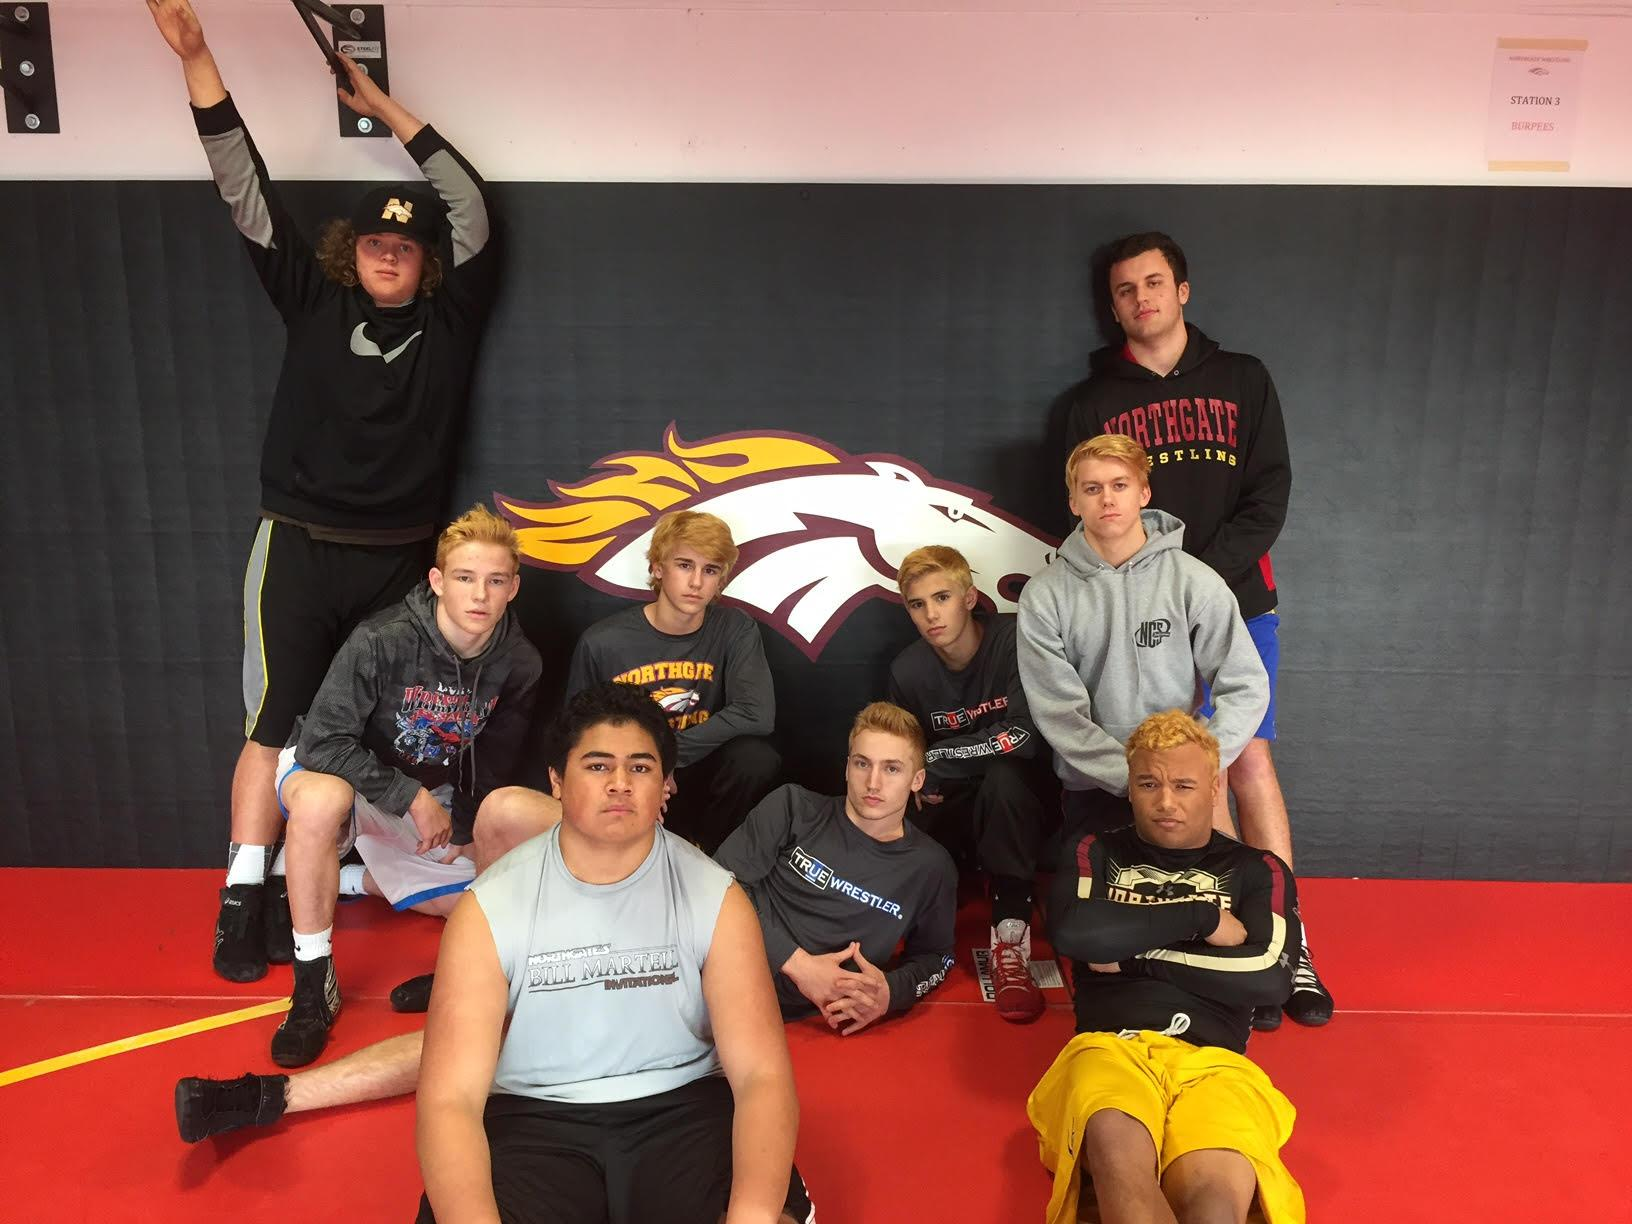 NCS participants Skylar Morford, Cormick Hamilton, David Ma'aki, Gage Mettler, Jaxon Pandelis, Cole Sanchez, Grant Chachere, Nathan Sutton, and Greg Ayala sport their bleached locks during practice.